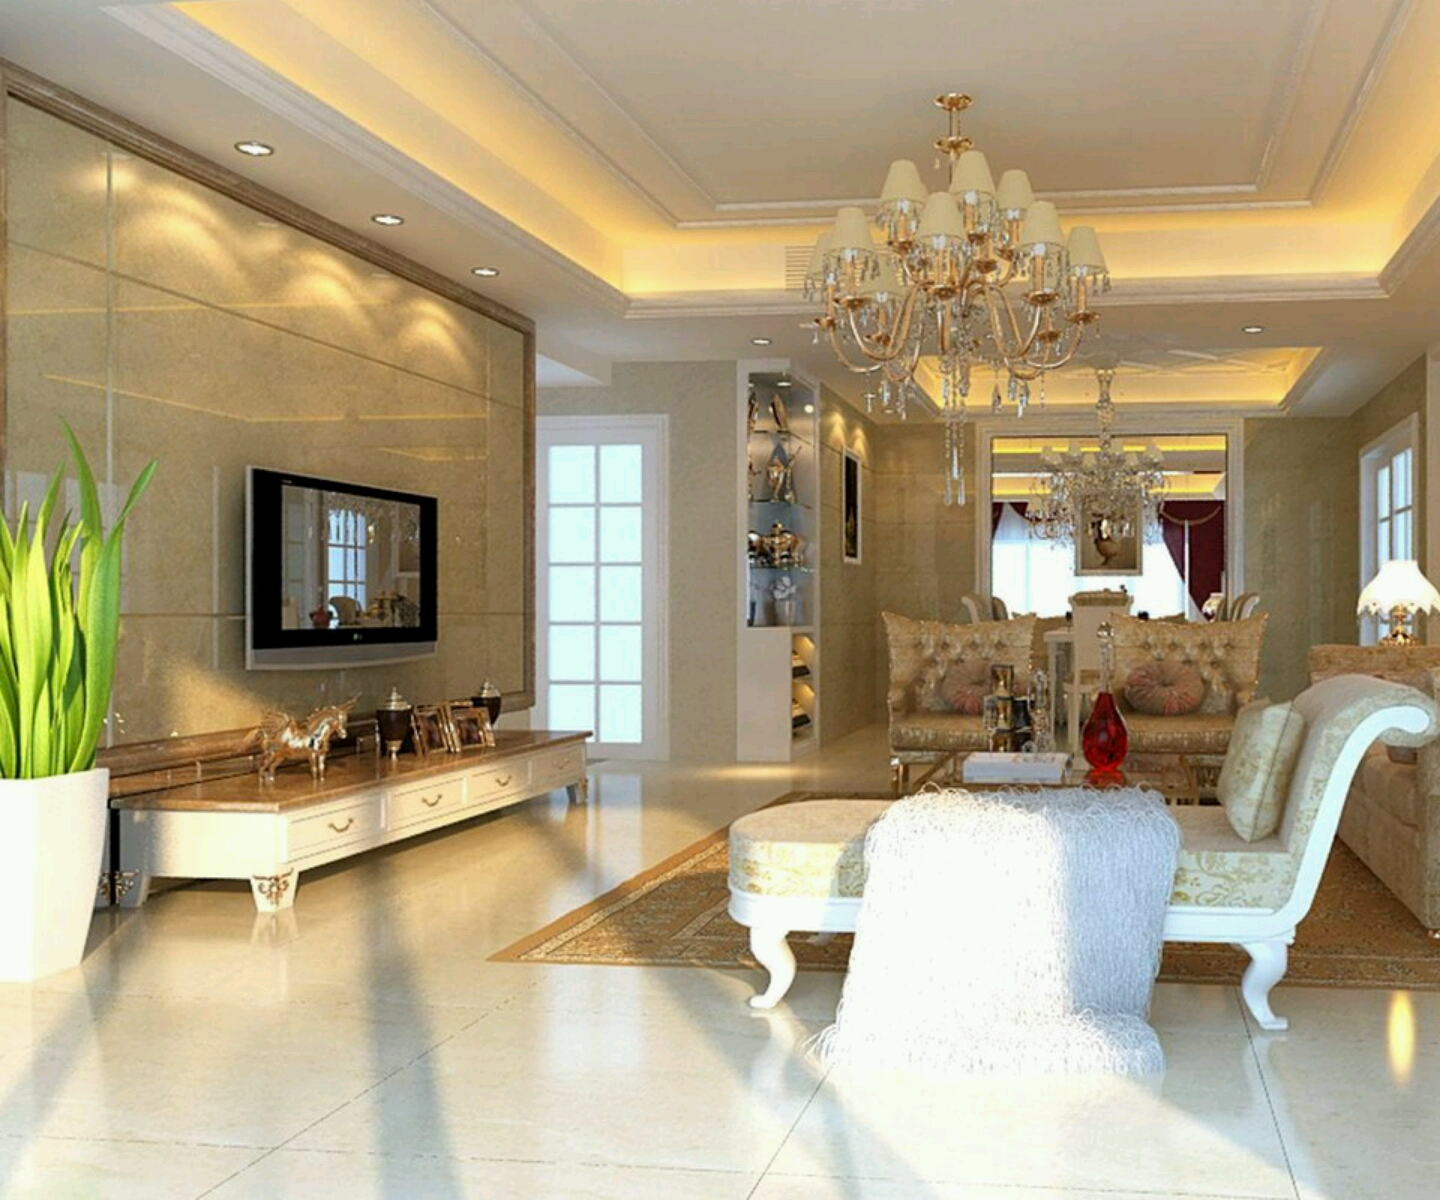 New home designs latest luxury homes interior decoration for Front room interior design